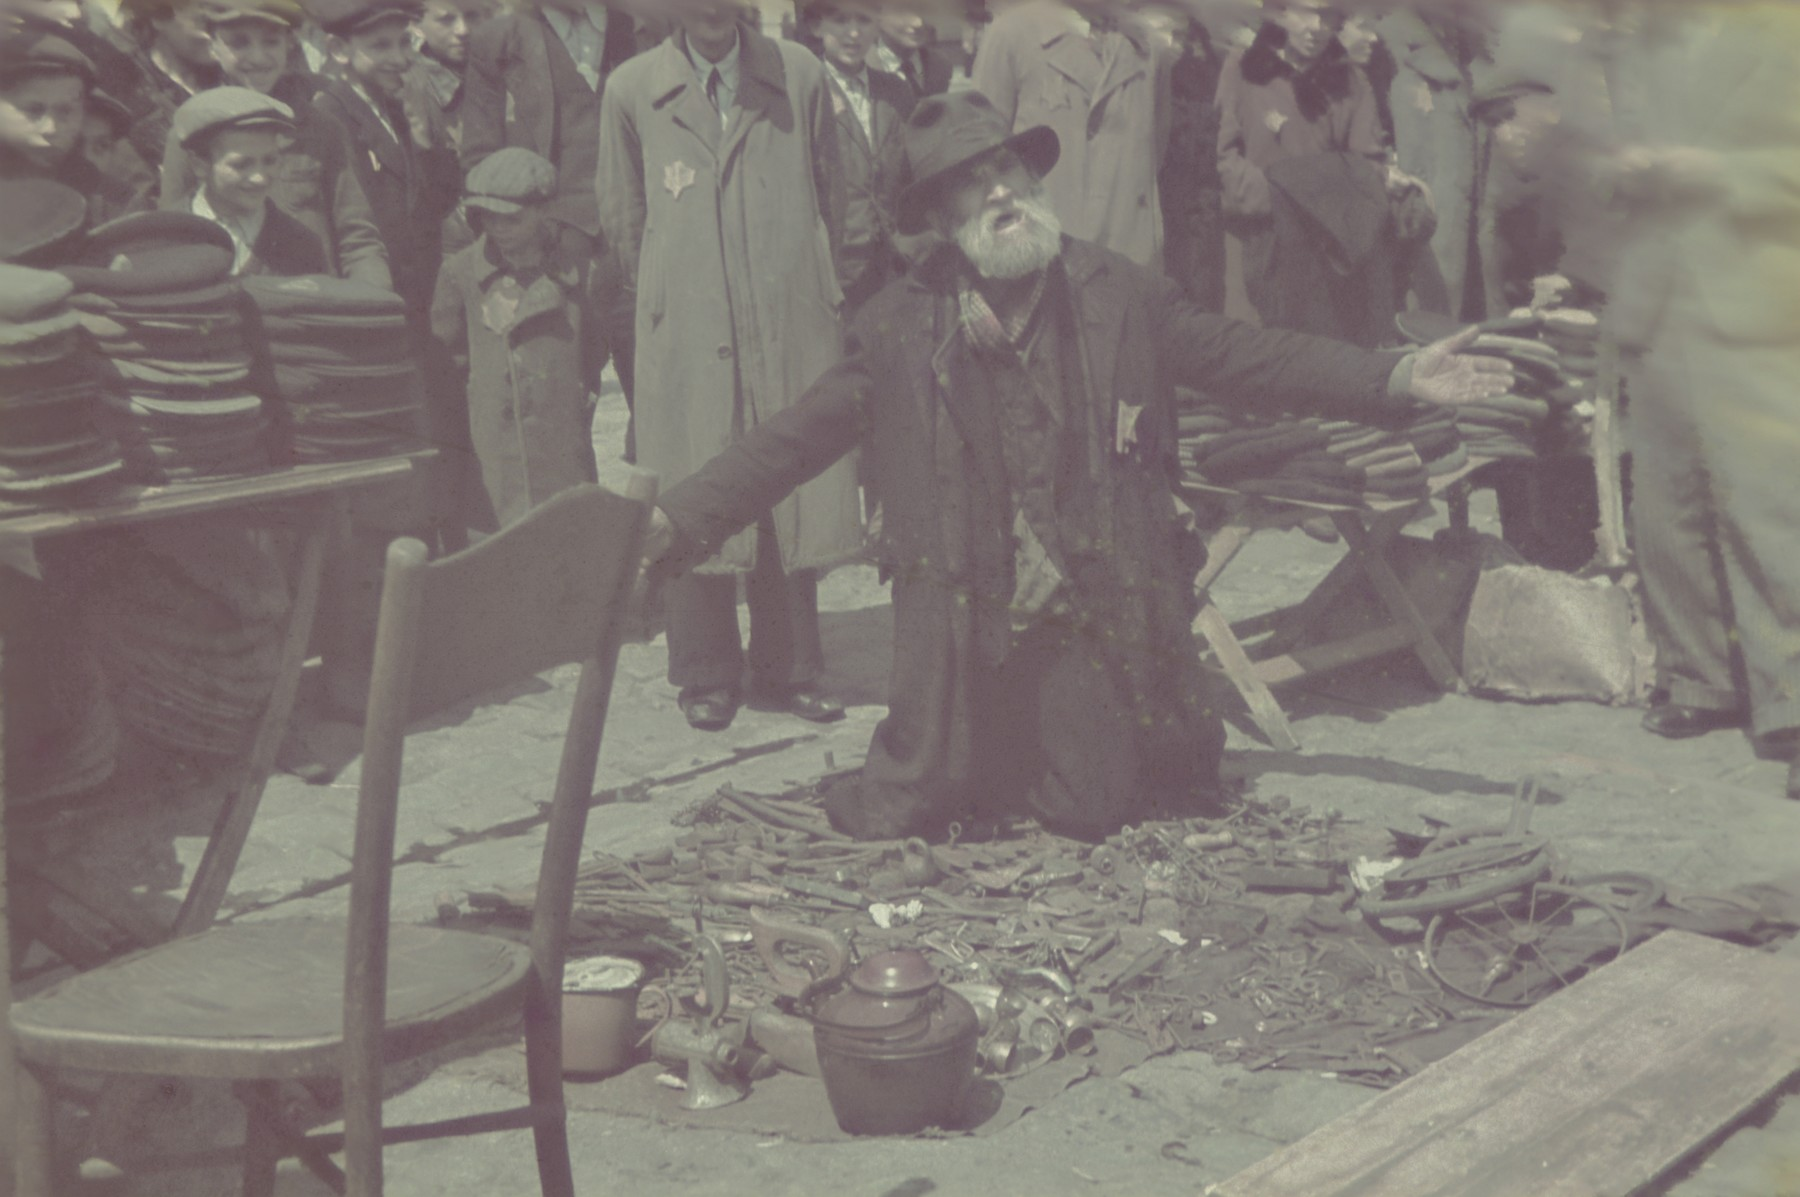 An elderly man at the ghetto market kneels by the objects he is selling with his arms extended .